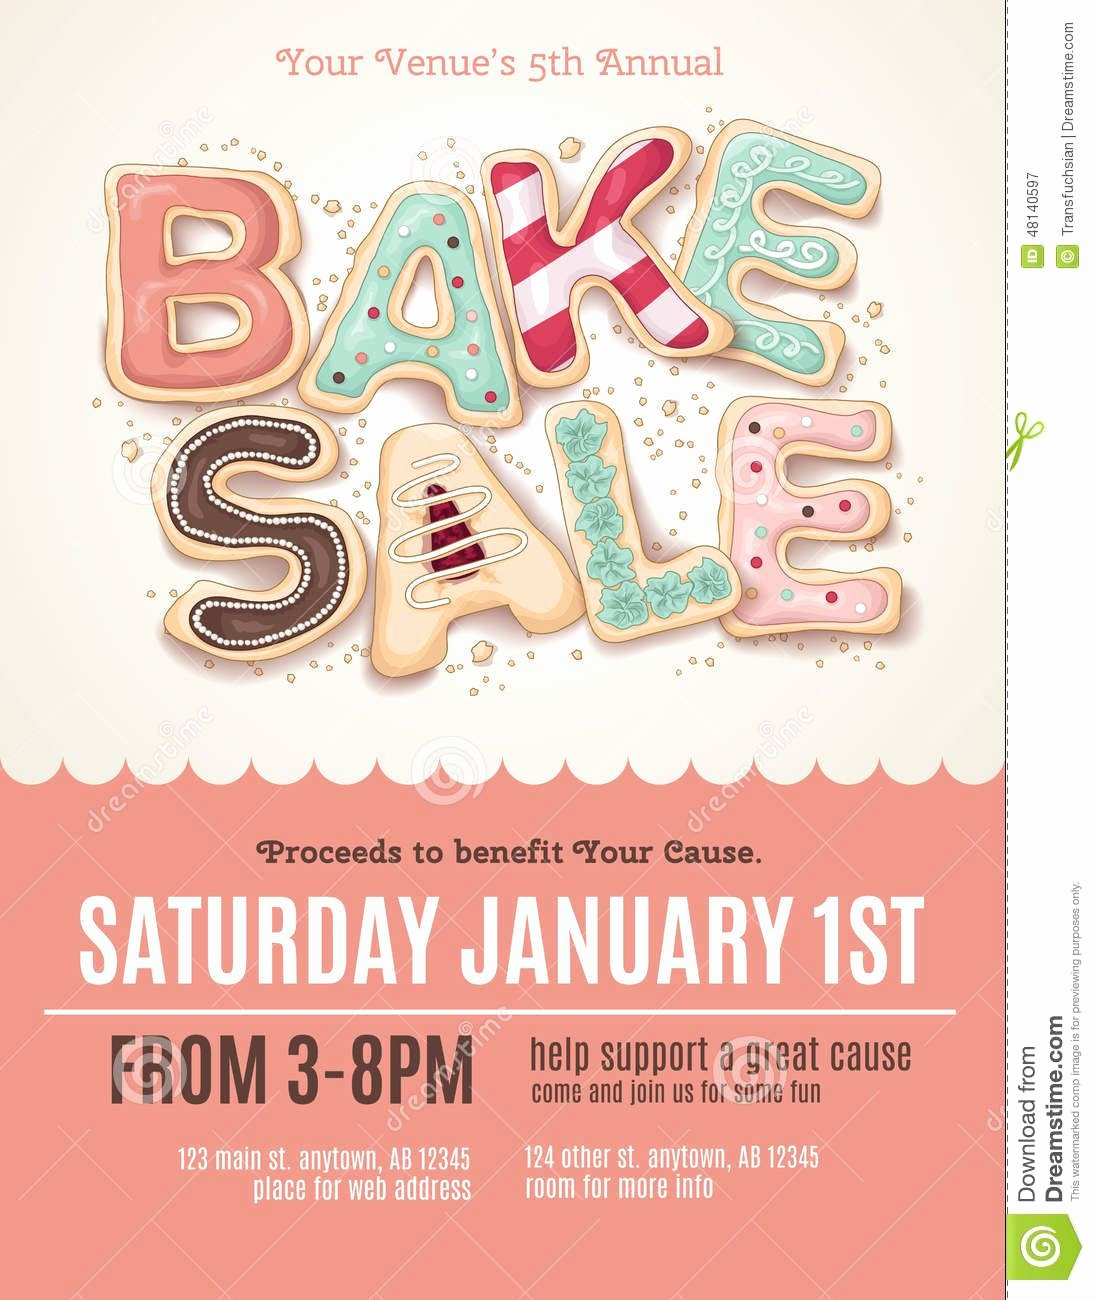 For Sale Flyer Template Awesome Fun Cookie Bake Sale Flyer Template Download From Over